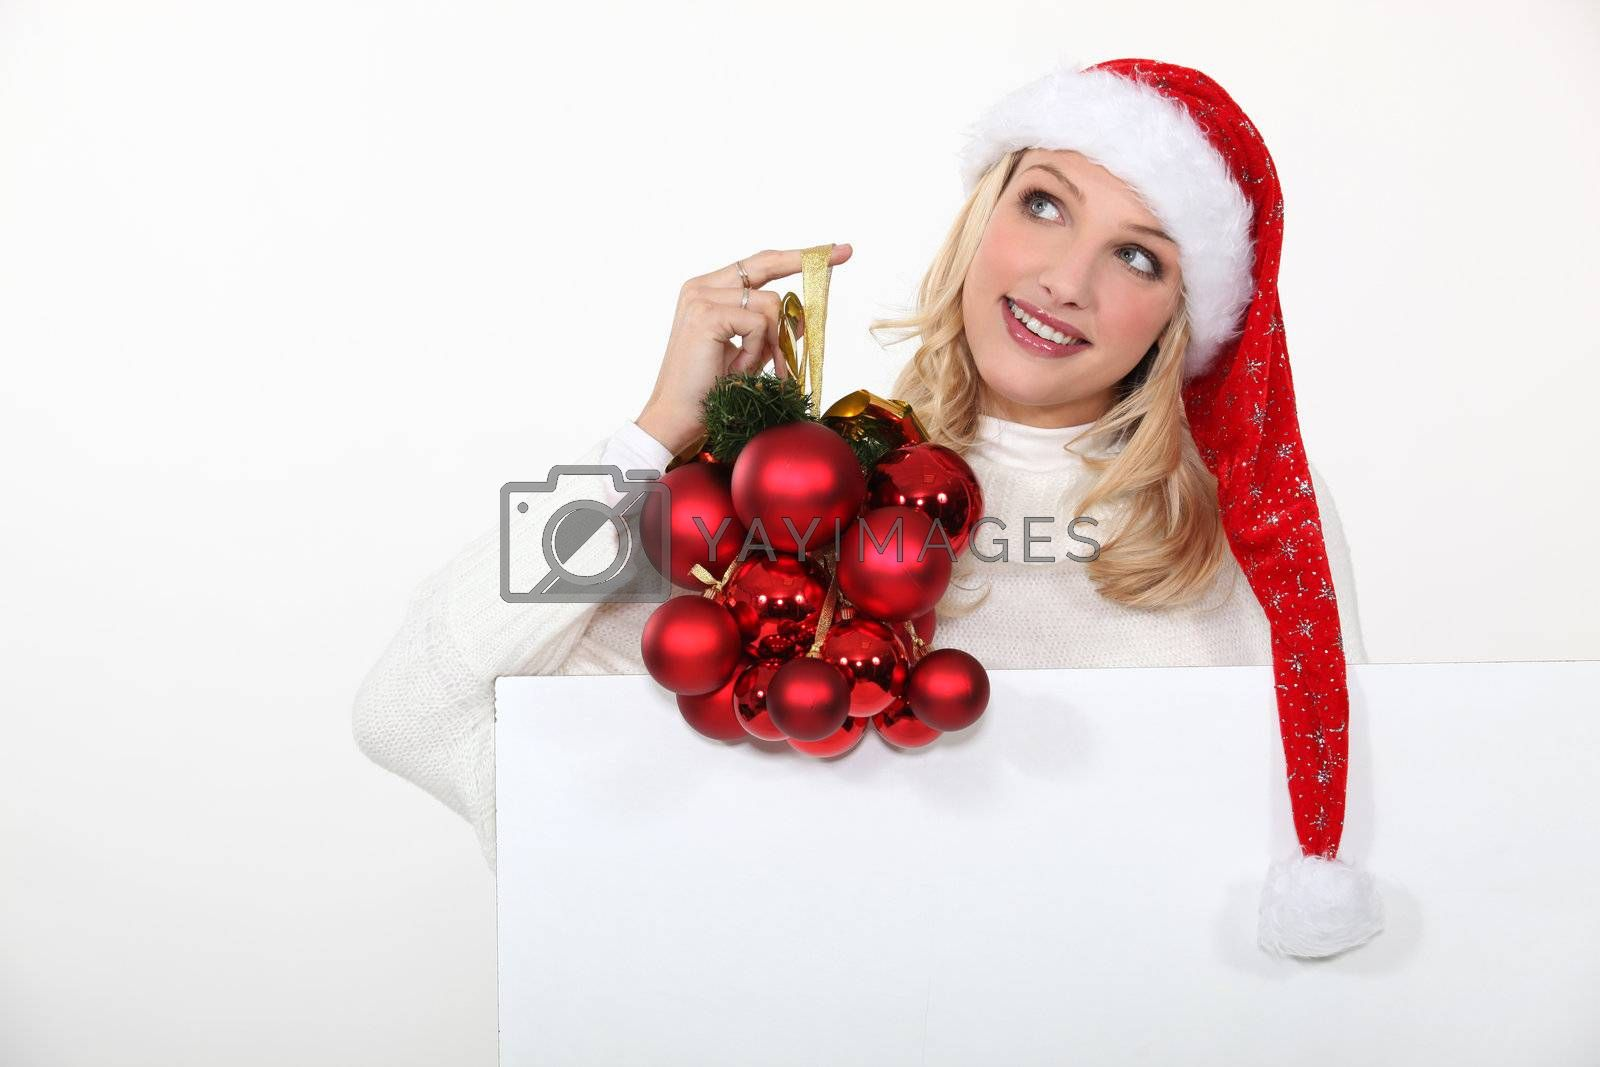 Woman holding Christmas ornaments